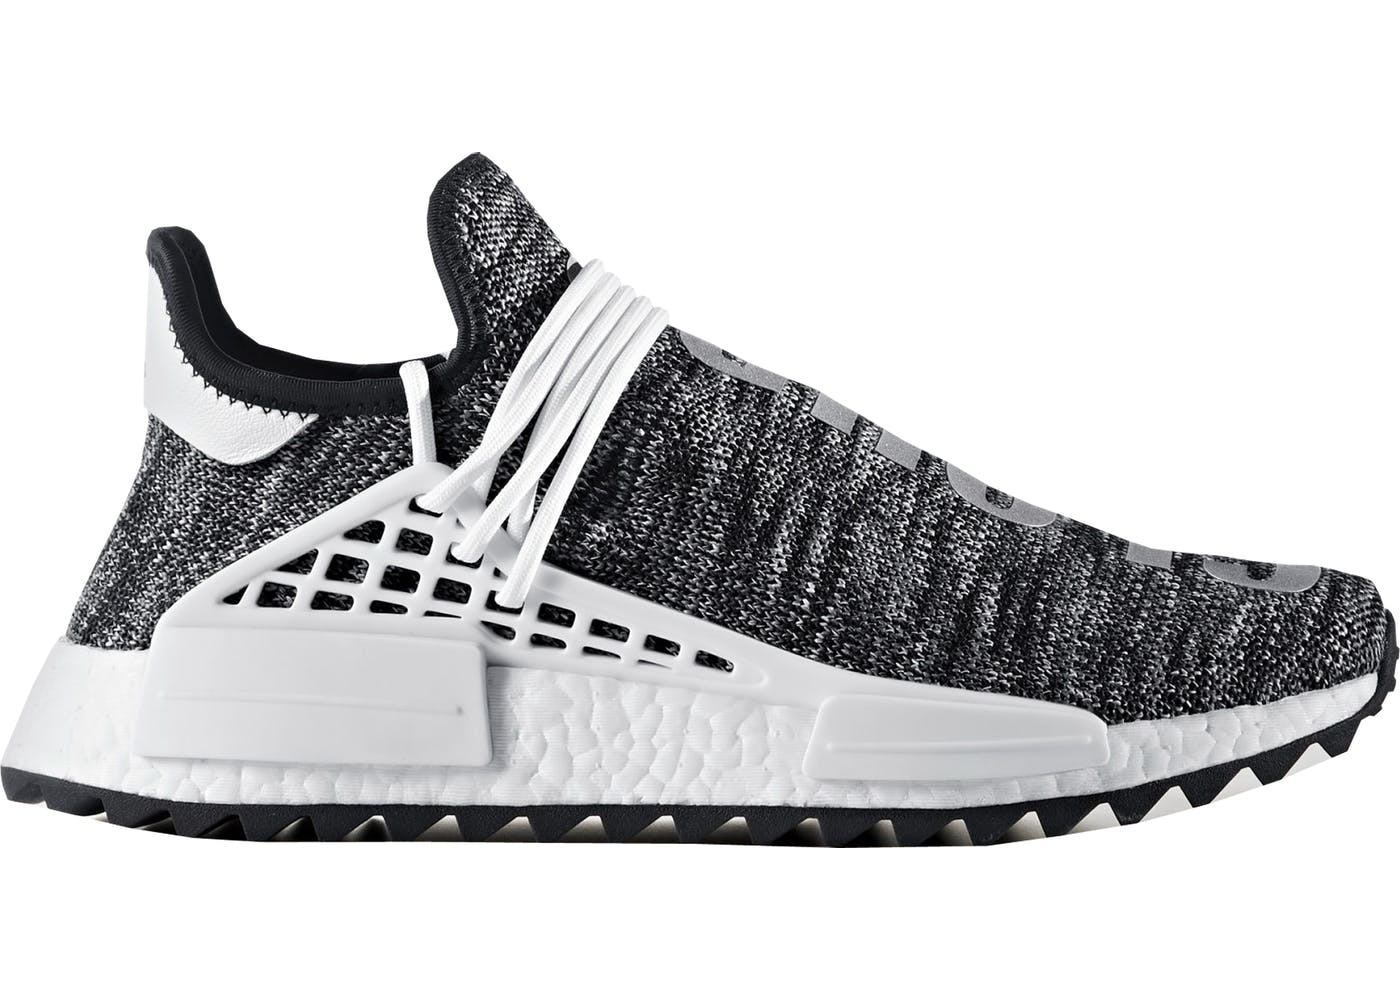 adidas NMD Human Race 5 Colorways Releasing